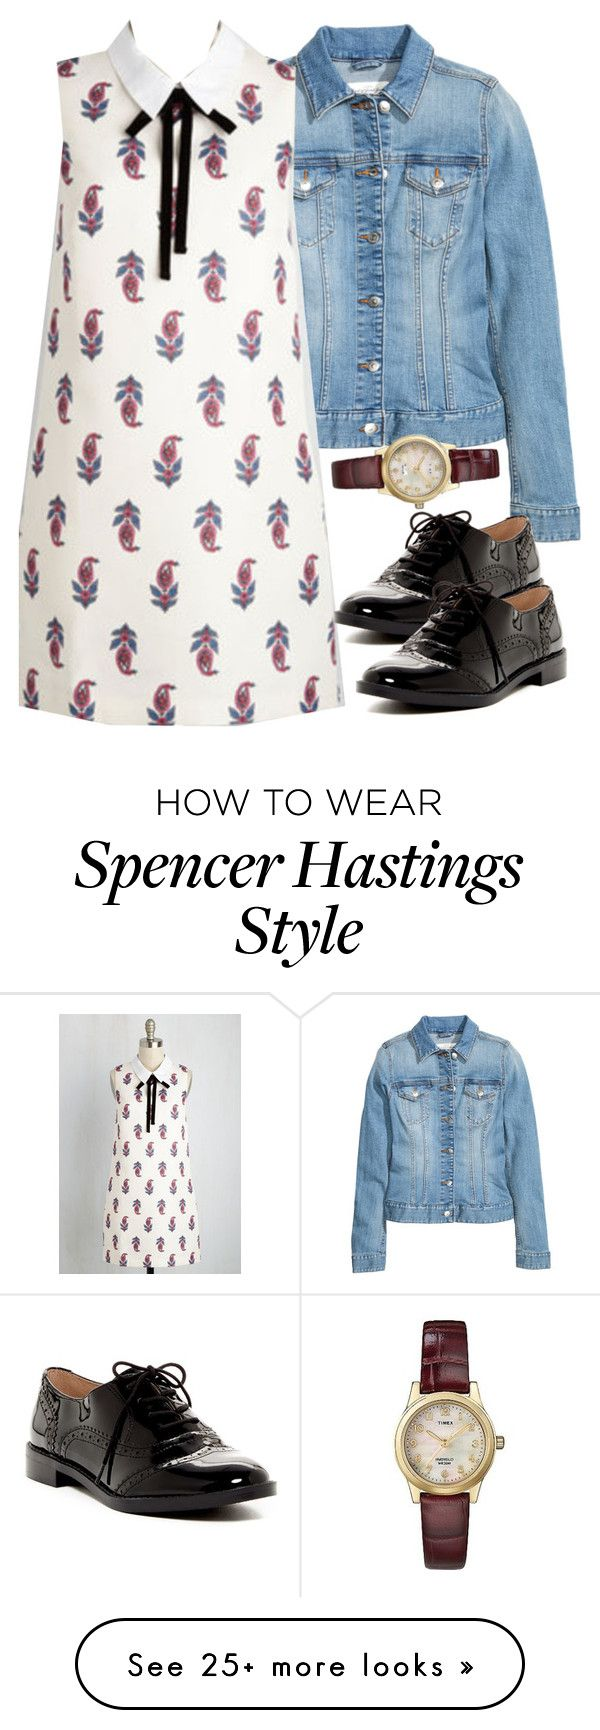 """""""Spencer Hastings inspired outfit with requested dress"""" by liarsstyle on Polyvore featuring H&M, Franco Sarto and Timex"""